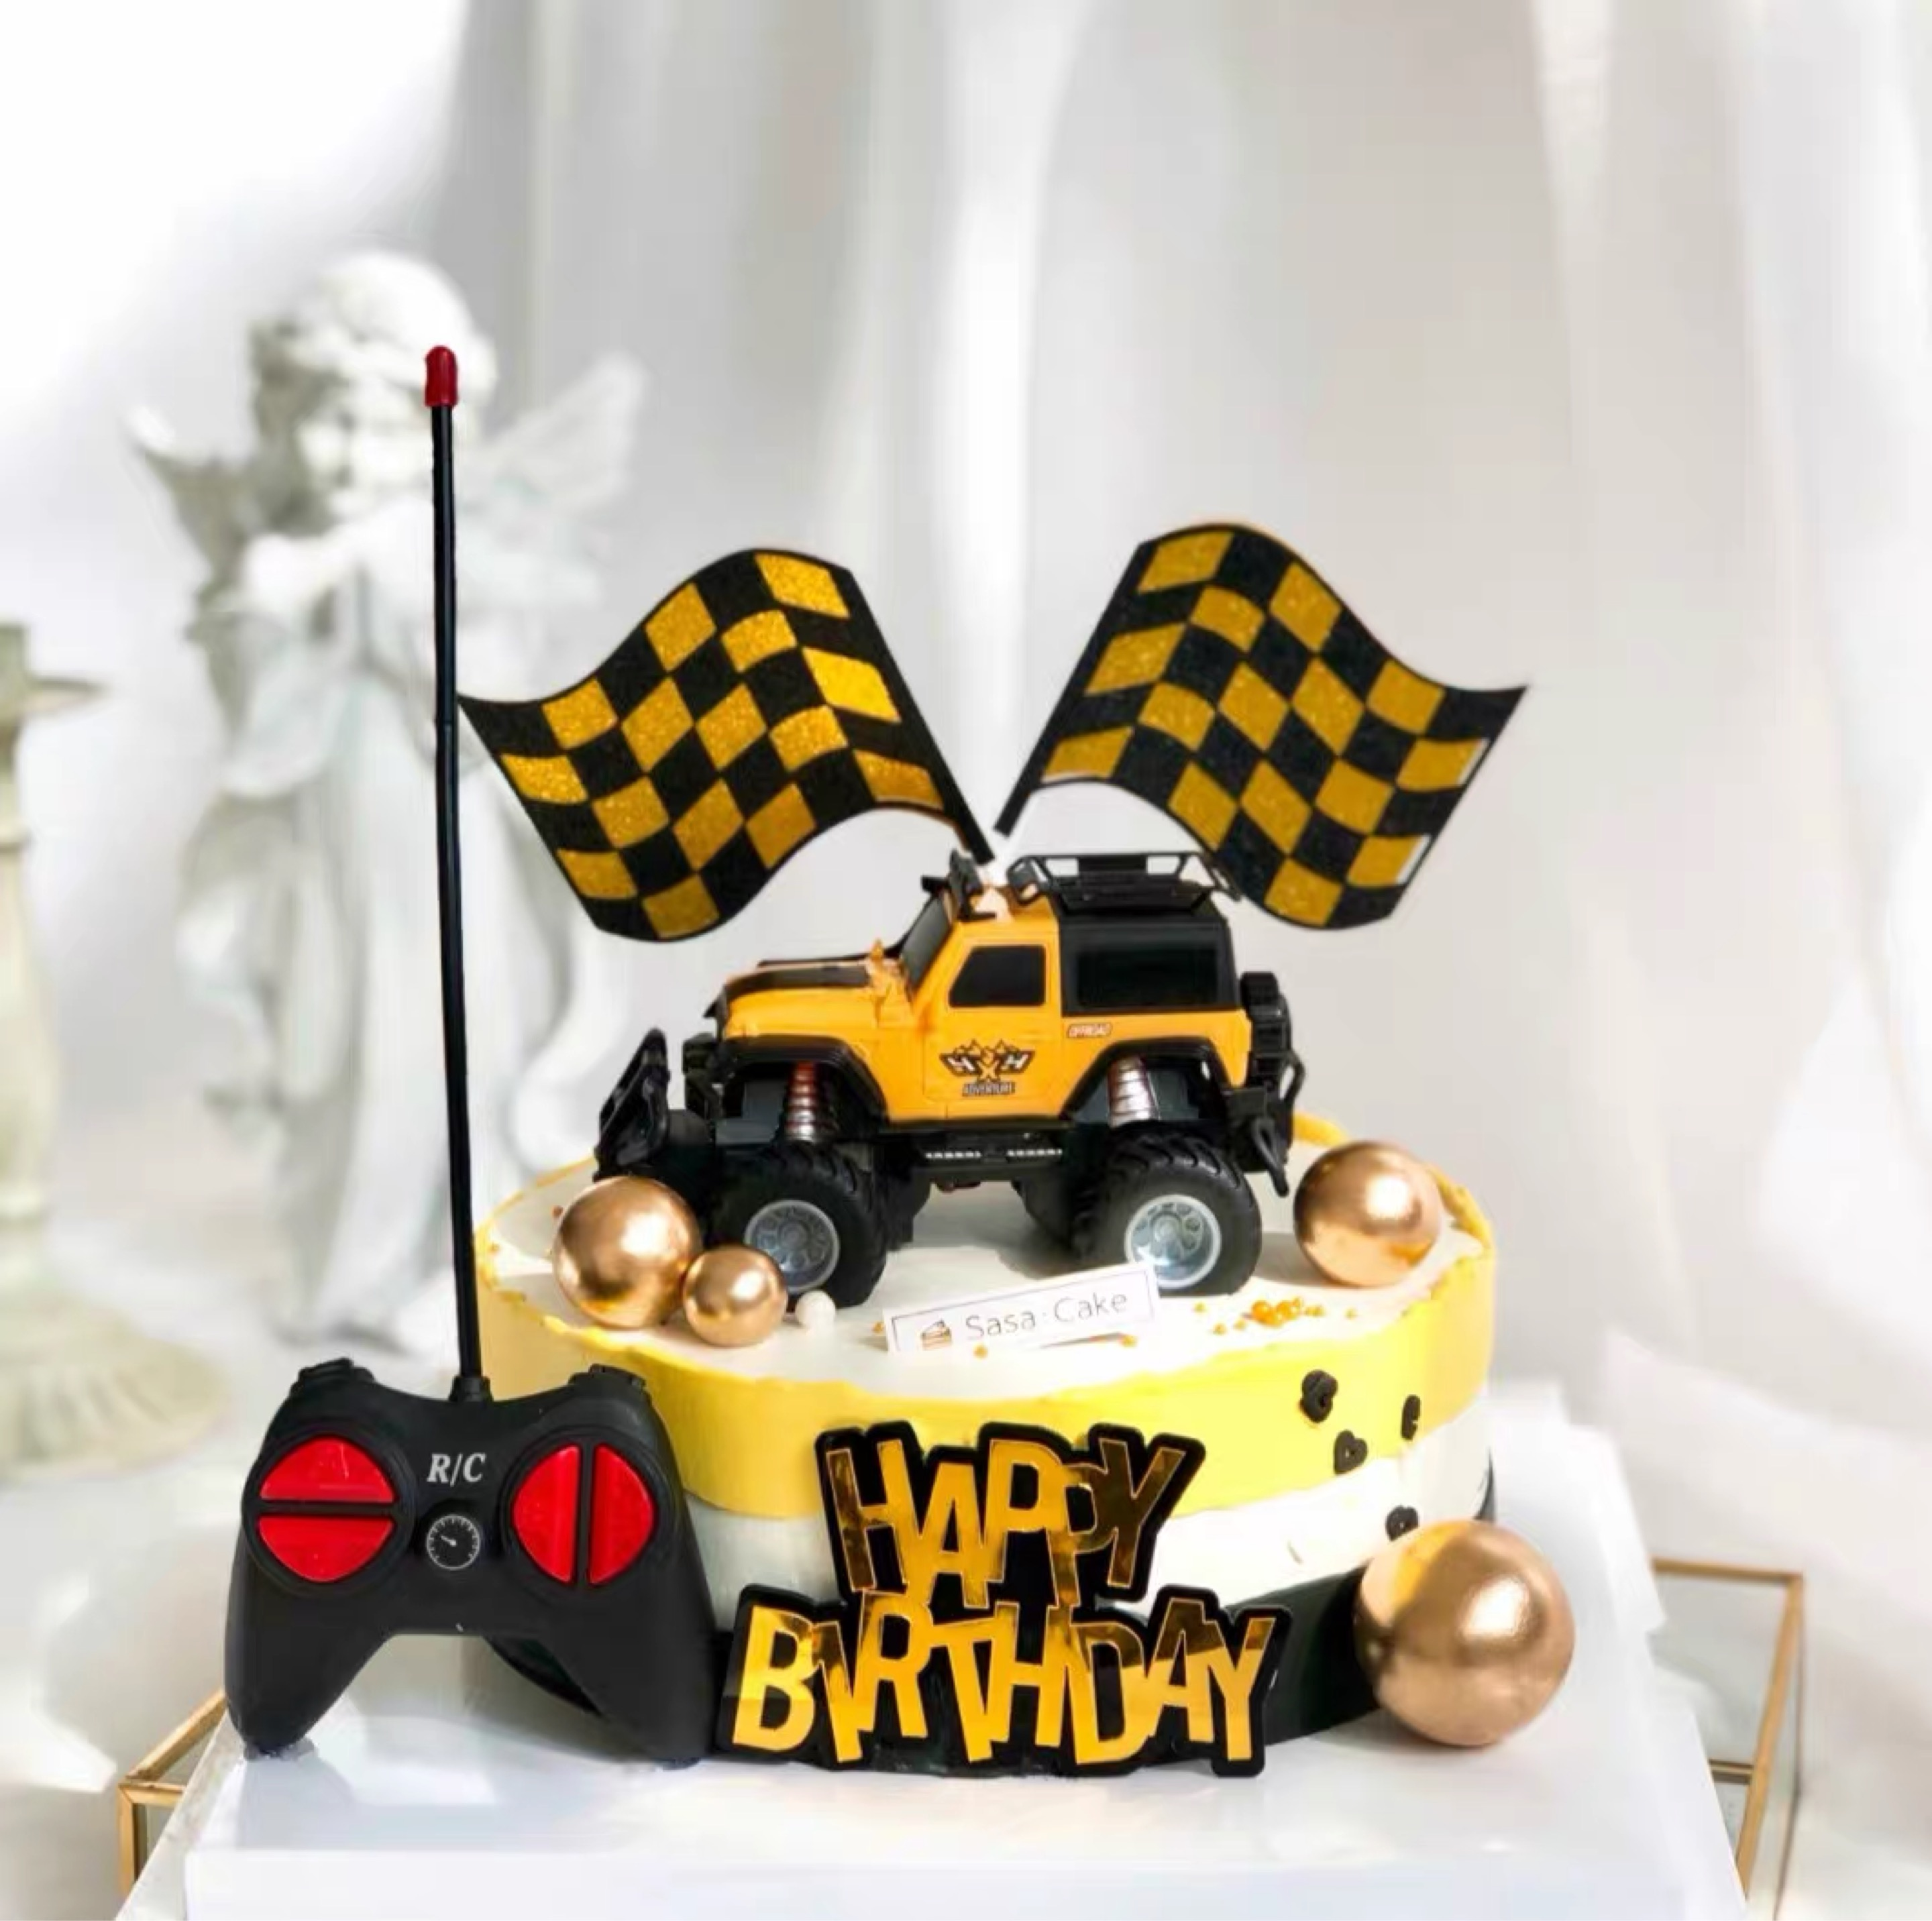 Internet Celebrity Remote Control Racing Electric Off Road Vehicle Birthday Cake Decoration Boy Play Shopee Philippines